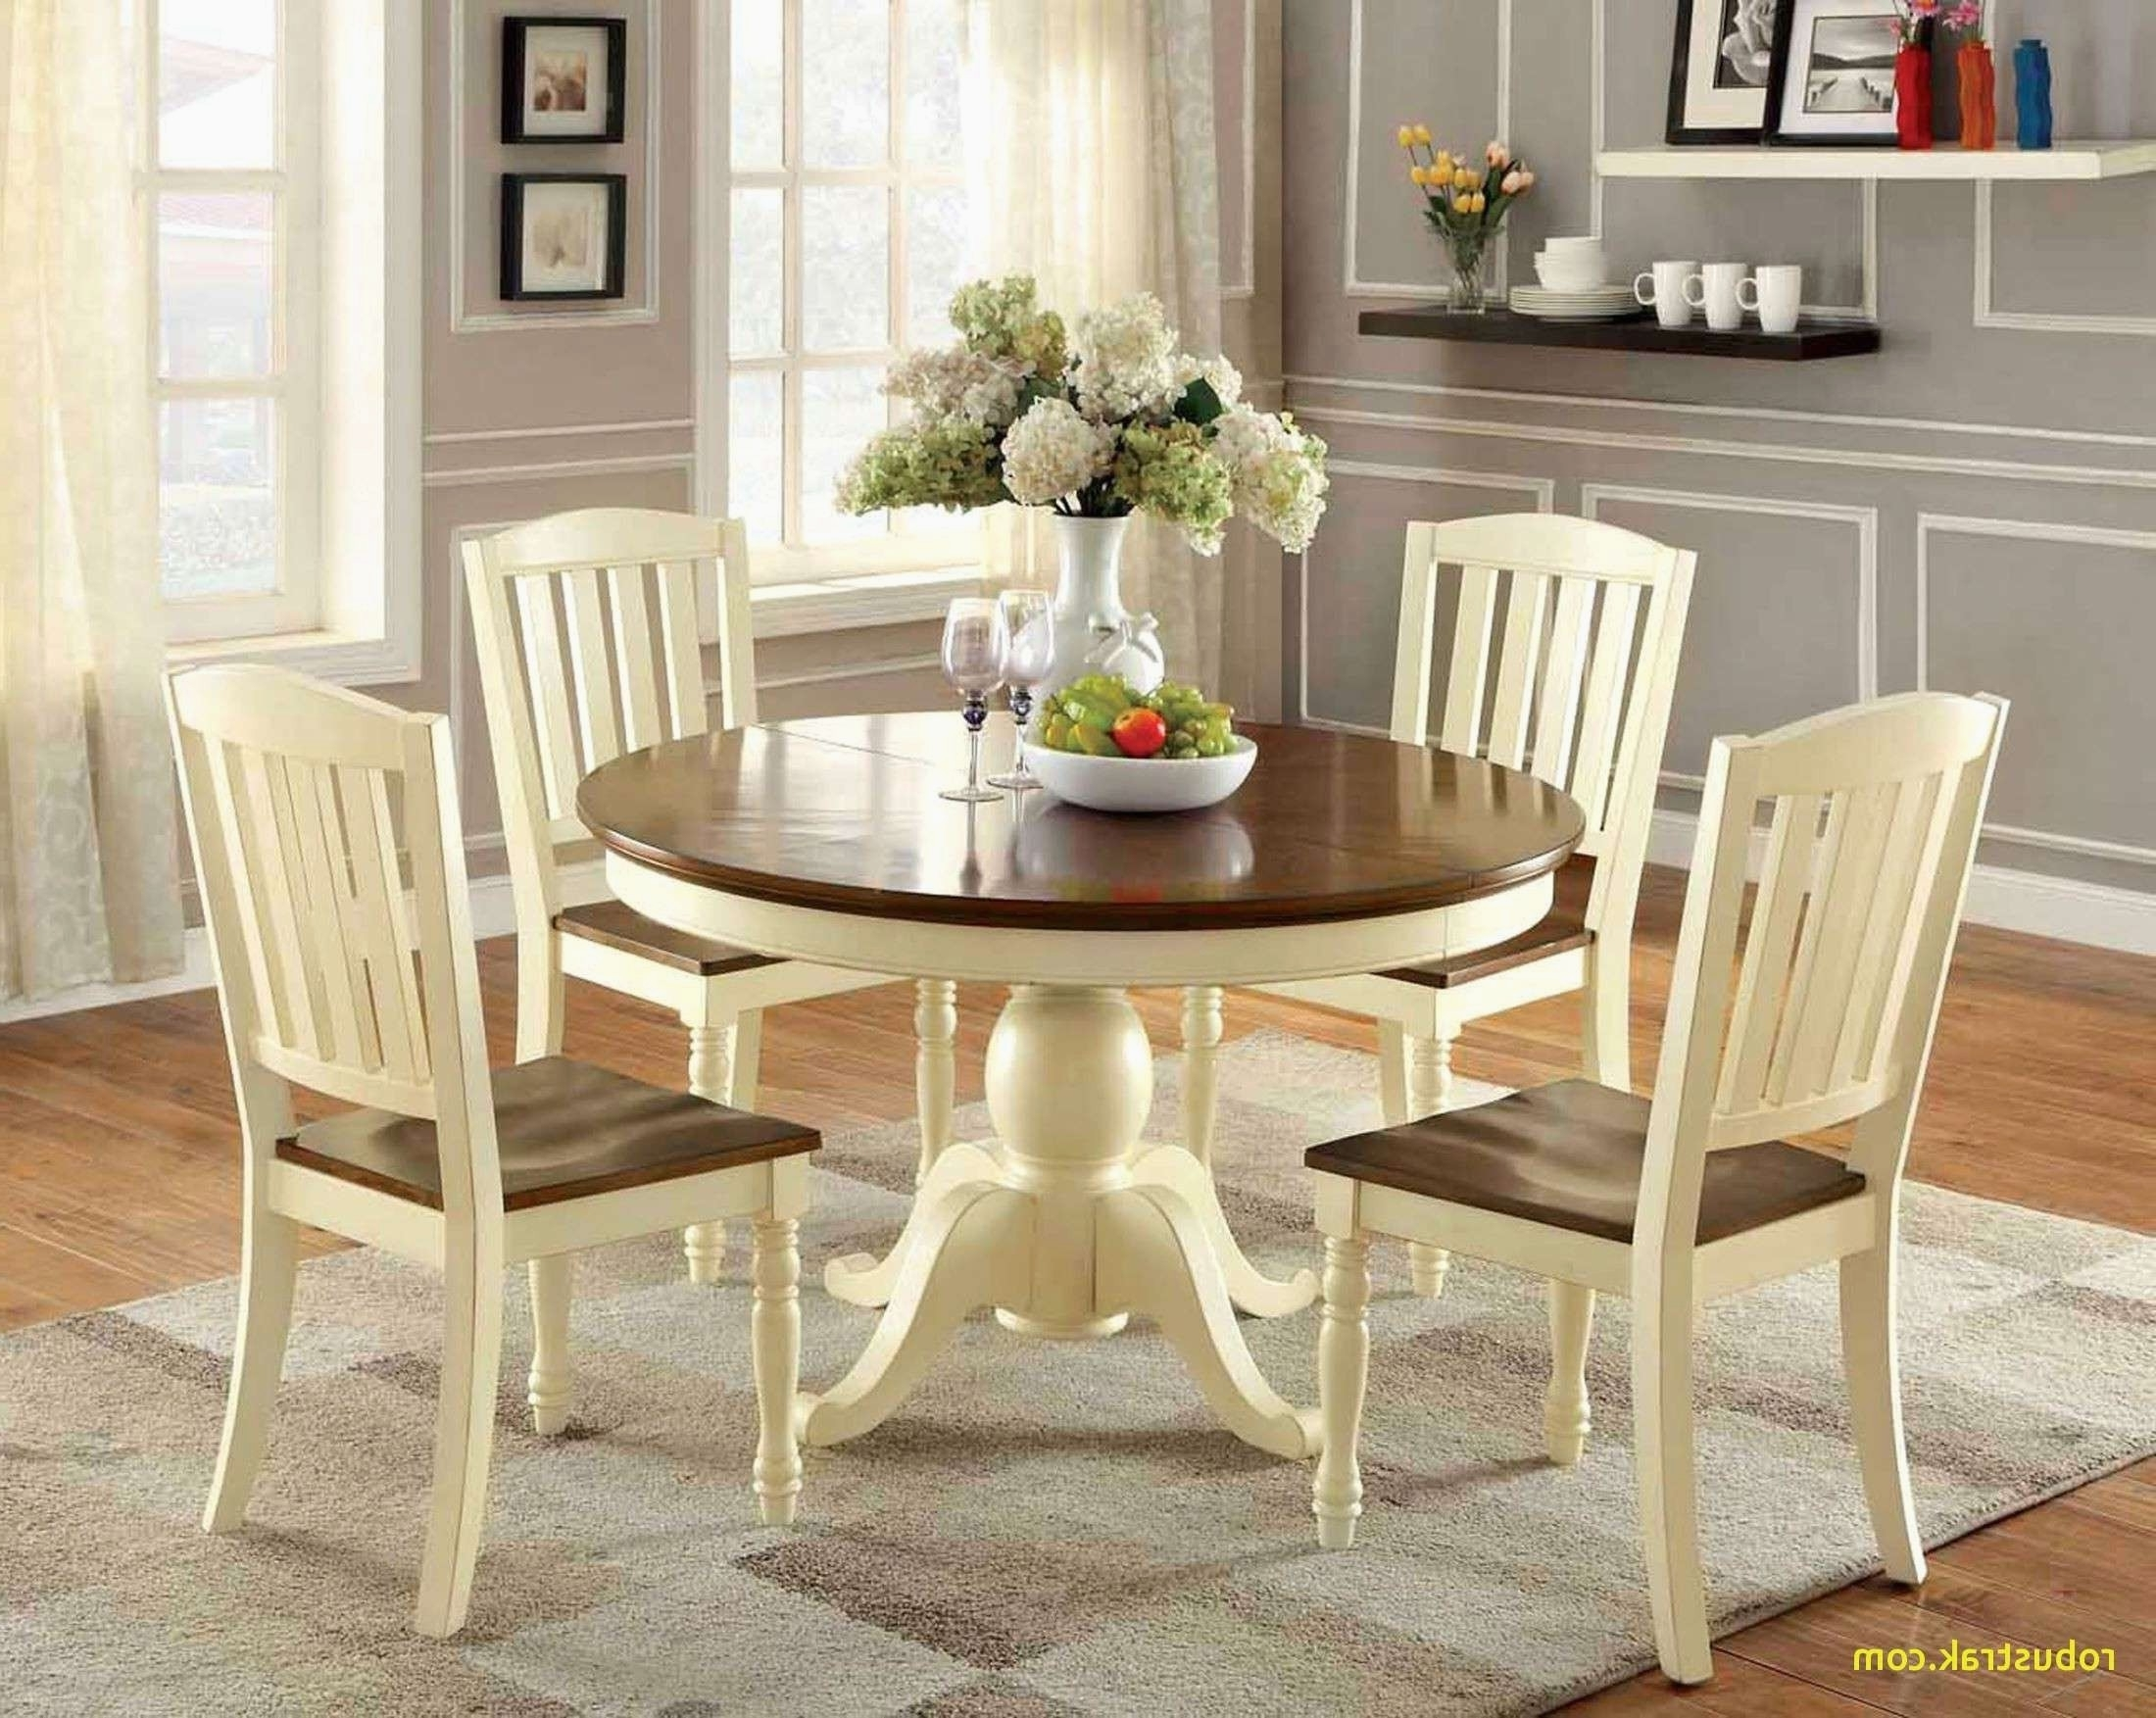 2017 Magnolia Home English Country Oval Dining Tables Pertaining To White Oval Extending Dining Table Lovely English Country Oval Dining (View 1 of 25)